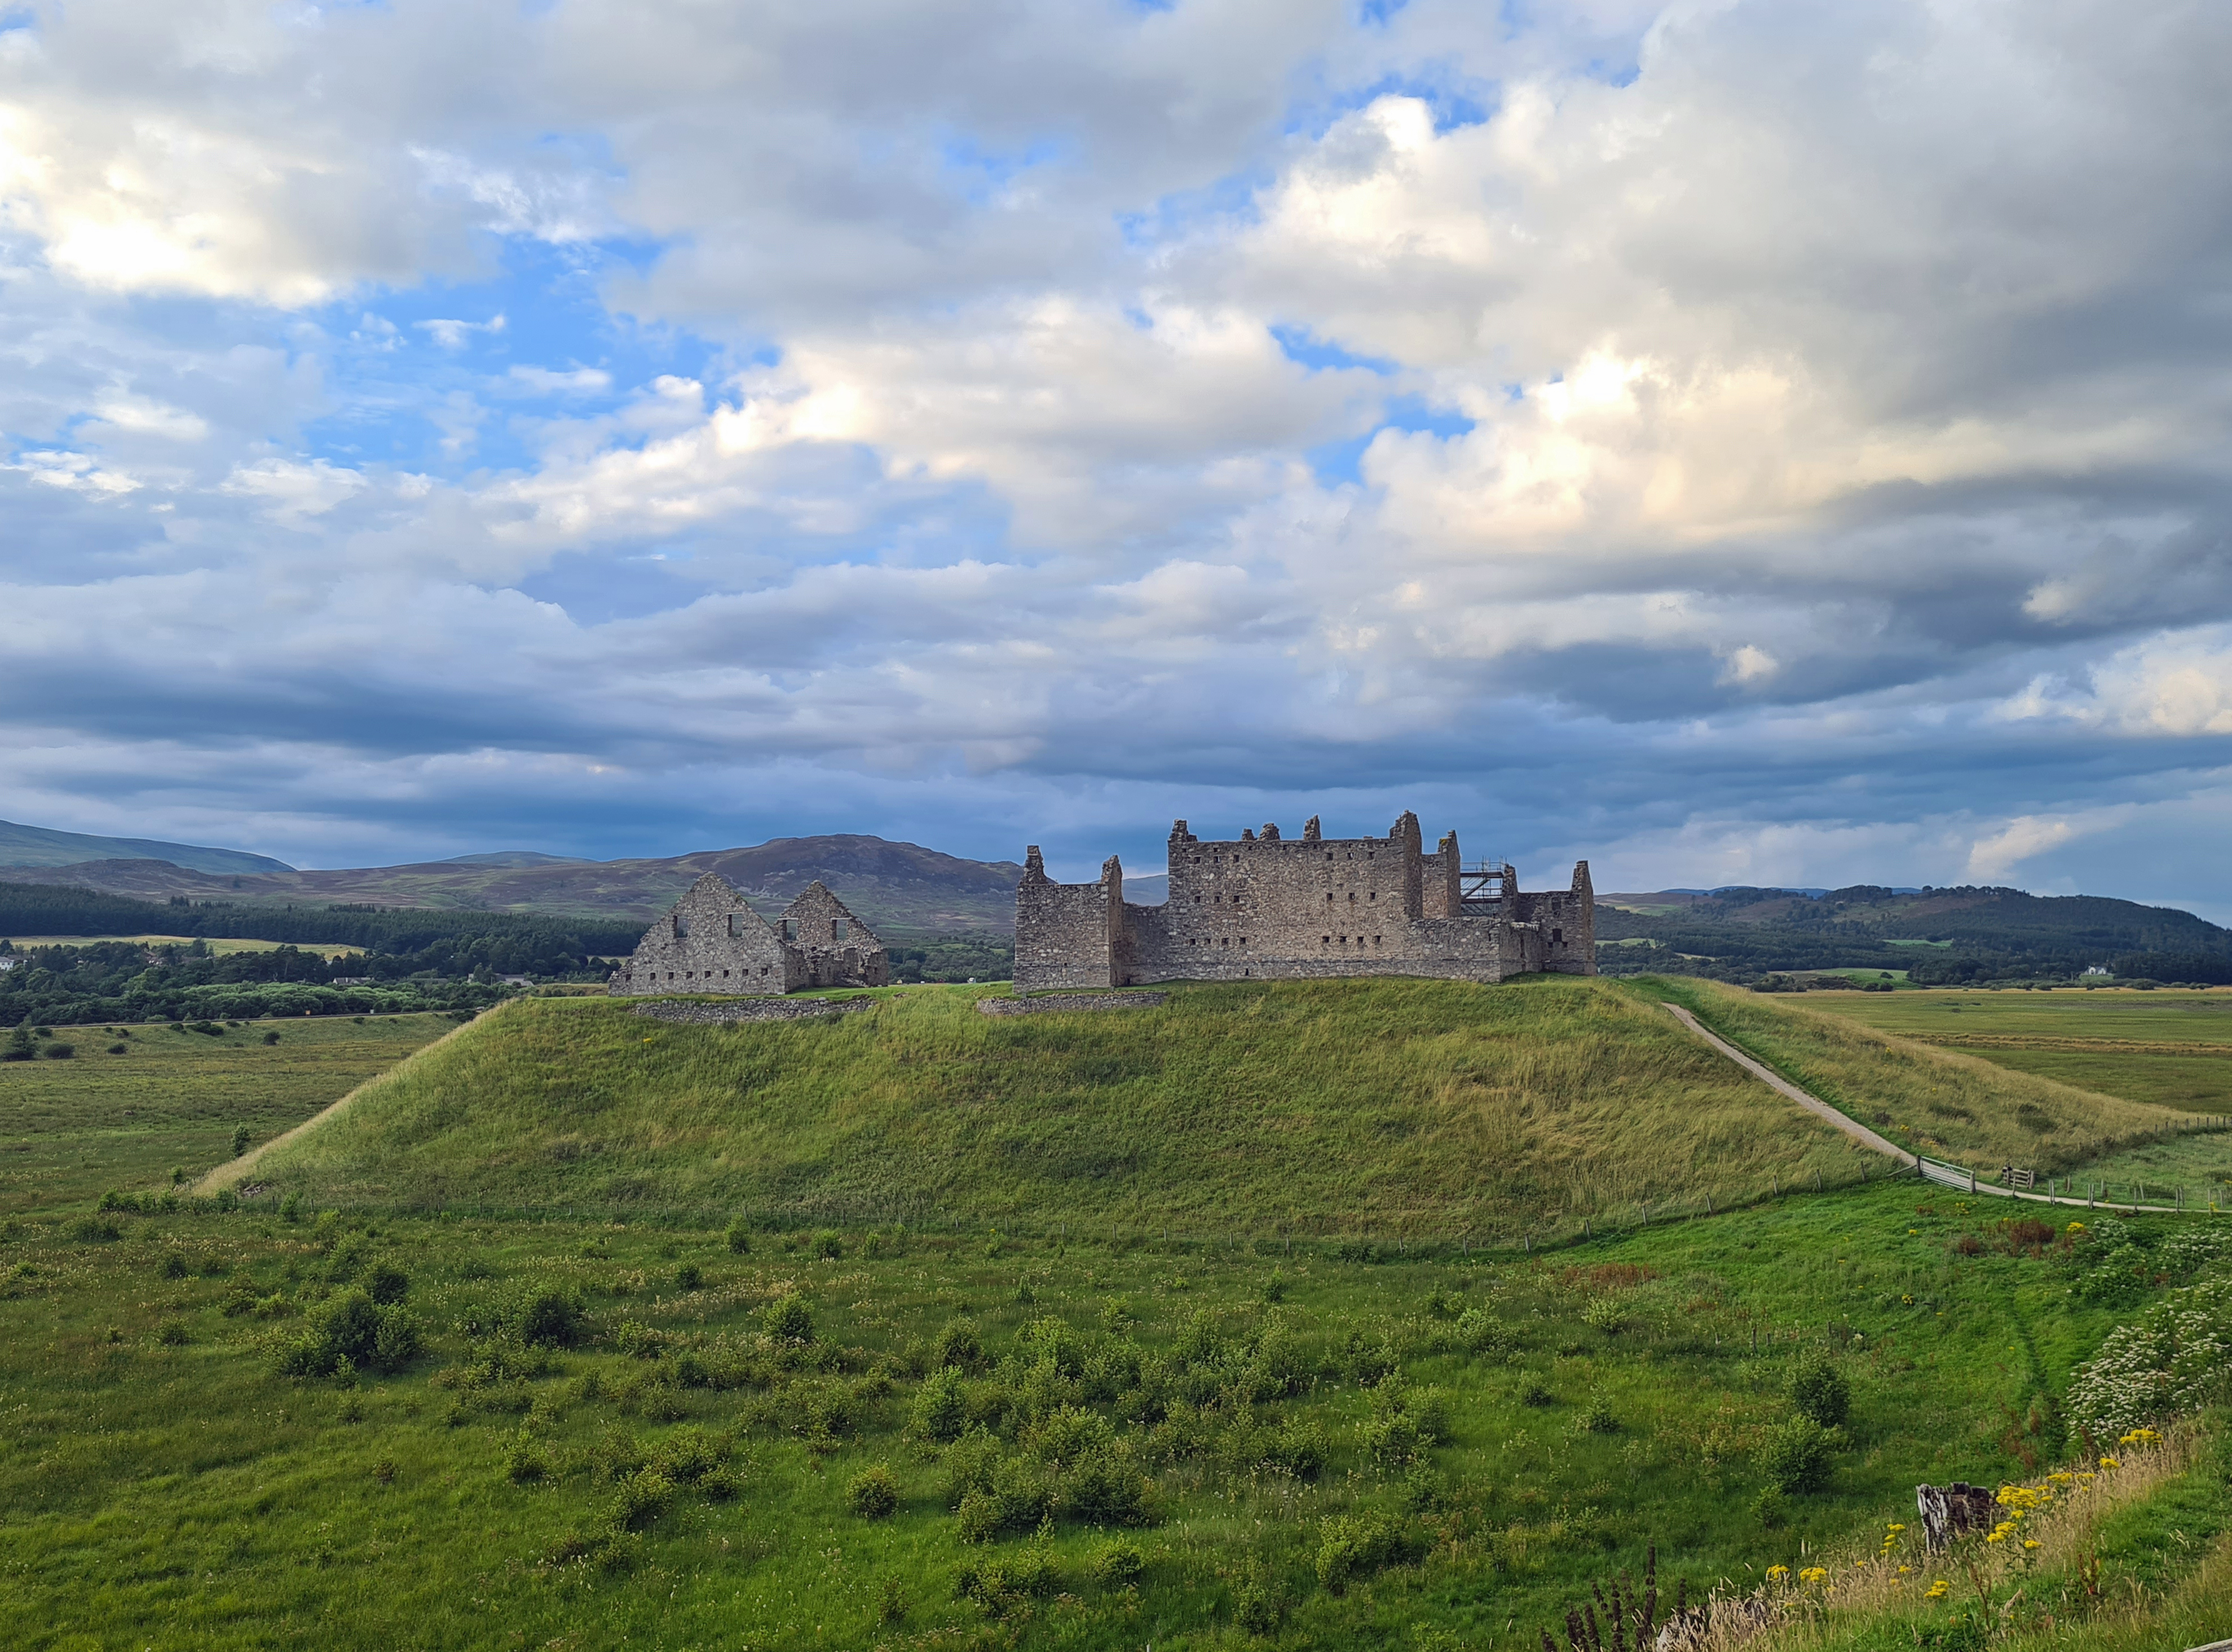 Built on a glacial shingle mound, Ruthven Barracks housed a garrison in the eighteenth century